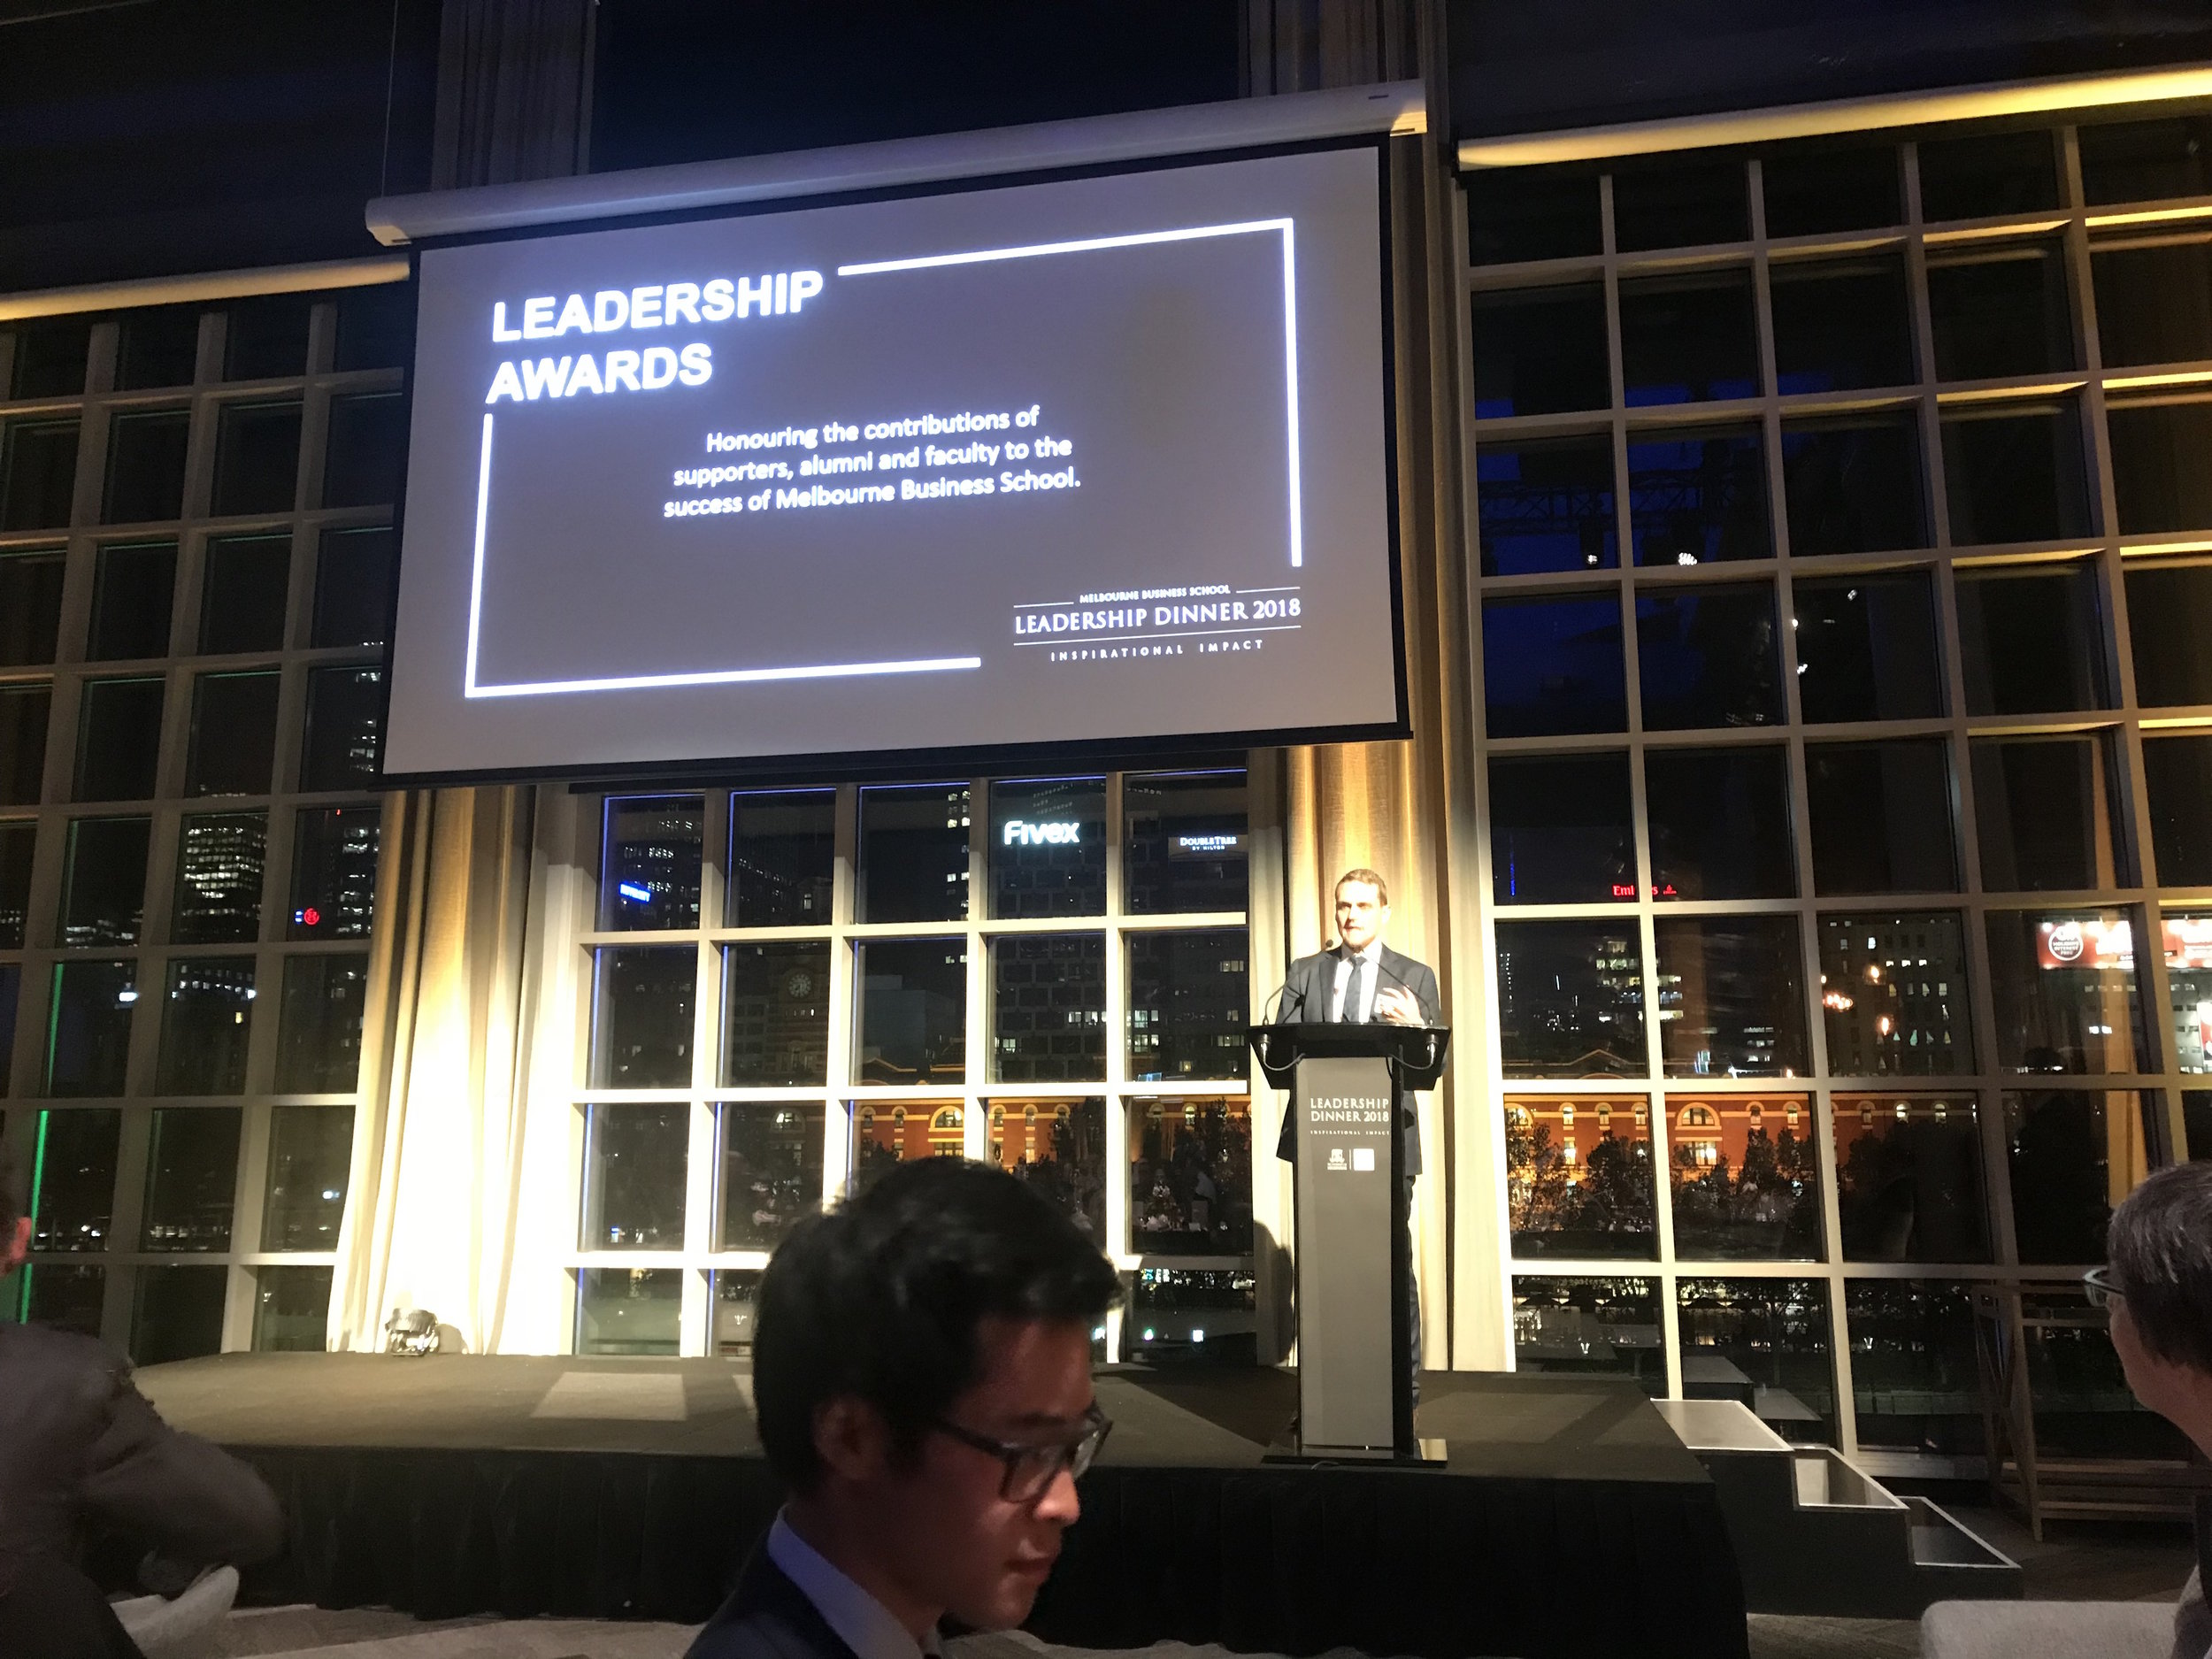 Navi CEO Alex Newton accepting the Leadership Award at the MBS Leadership Dinner 2018